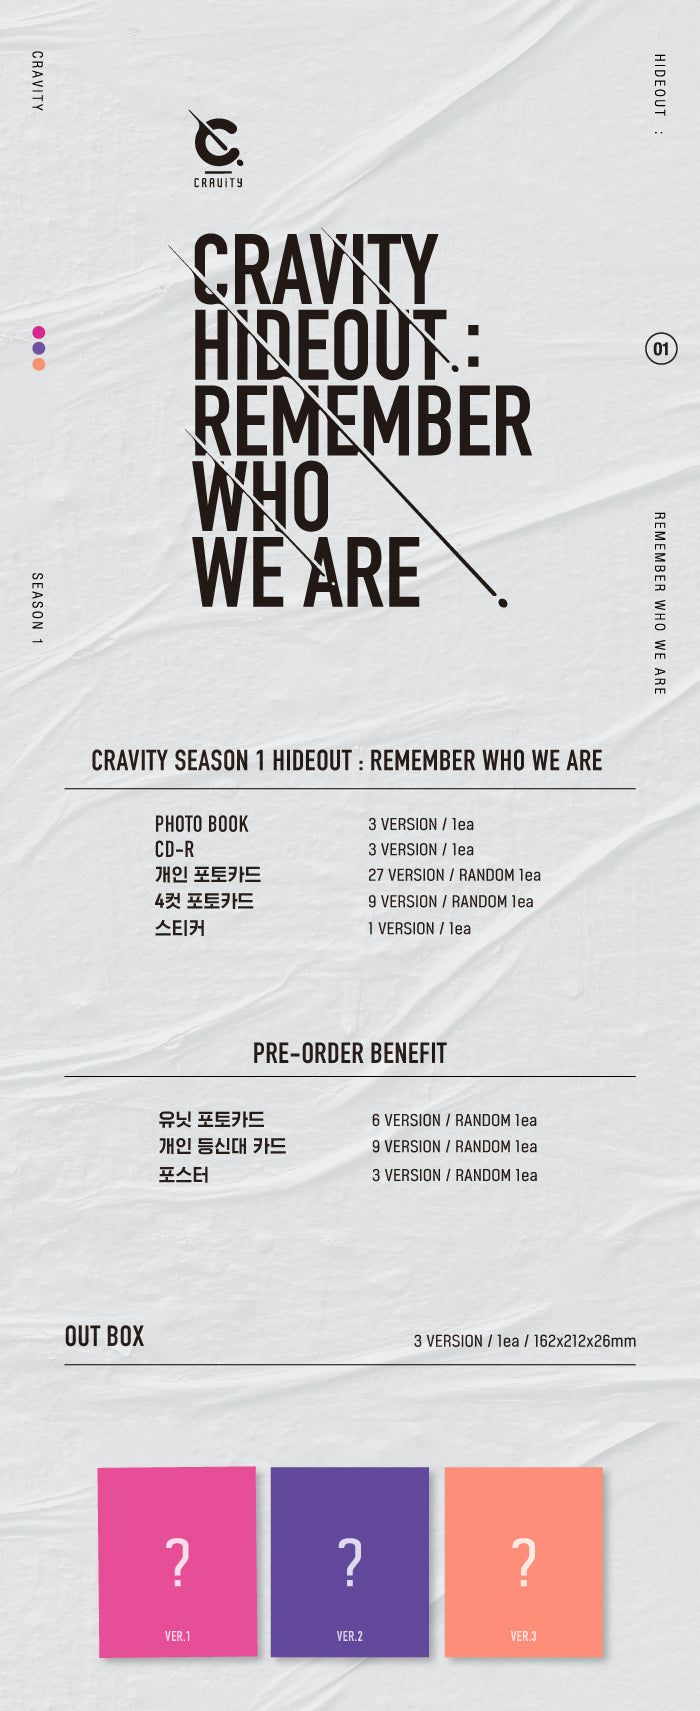 Cravity - Cravity Season 1: Hideout - Remember Who We Are - J-Store Online